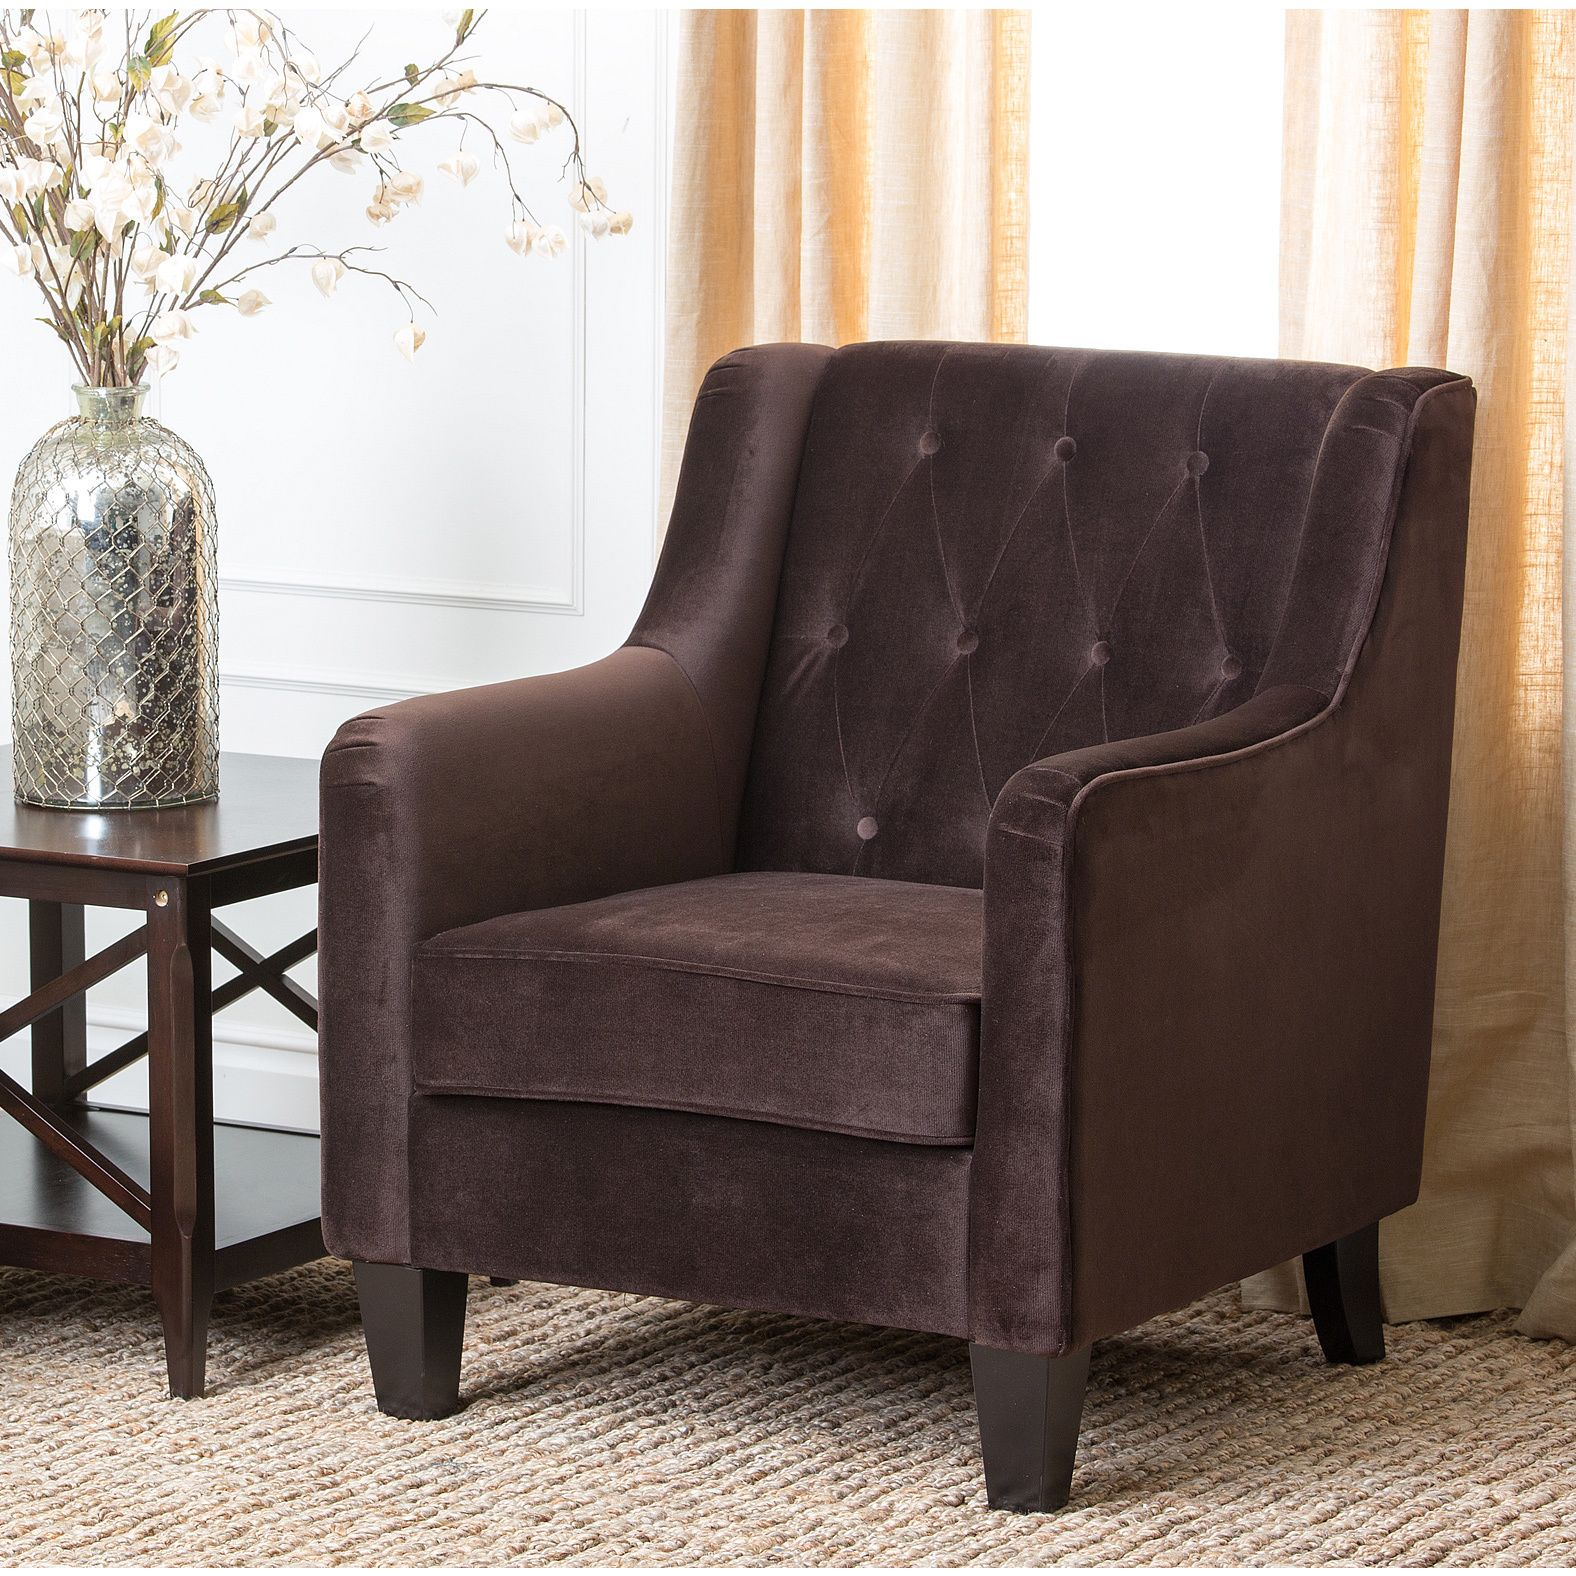 Enjoy this luxurious fabric Armchair for years to come. This chair features a solid frame with high quality microsuede fabric.